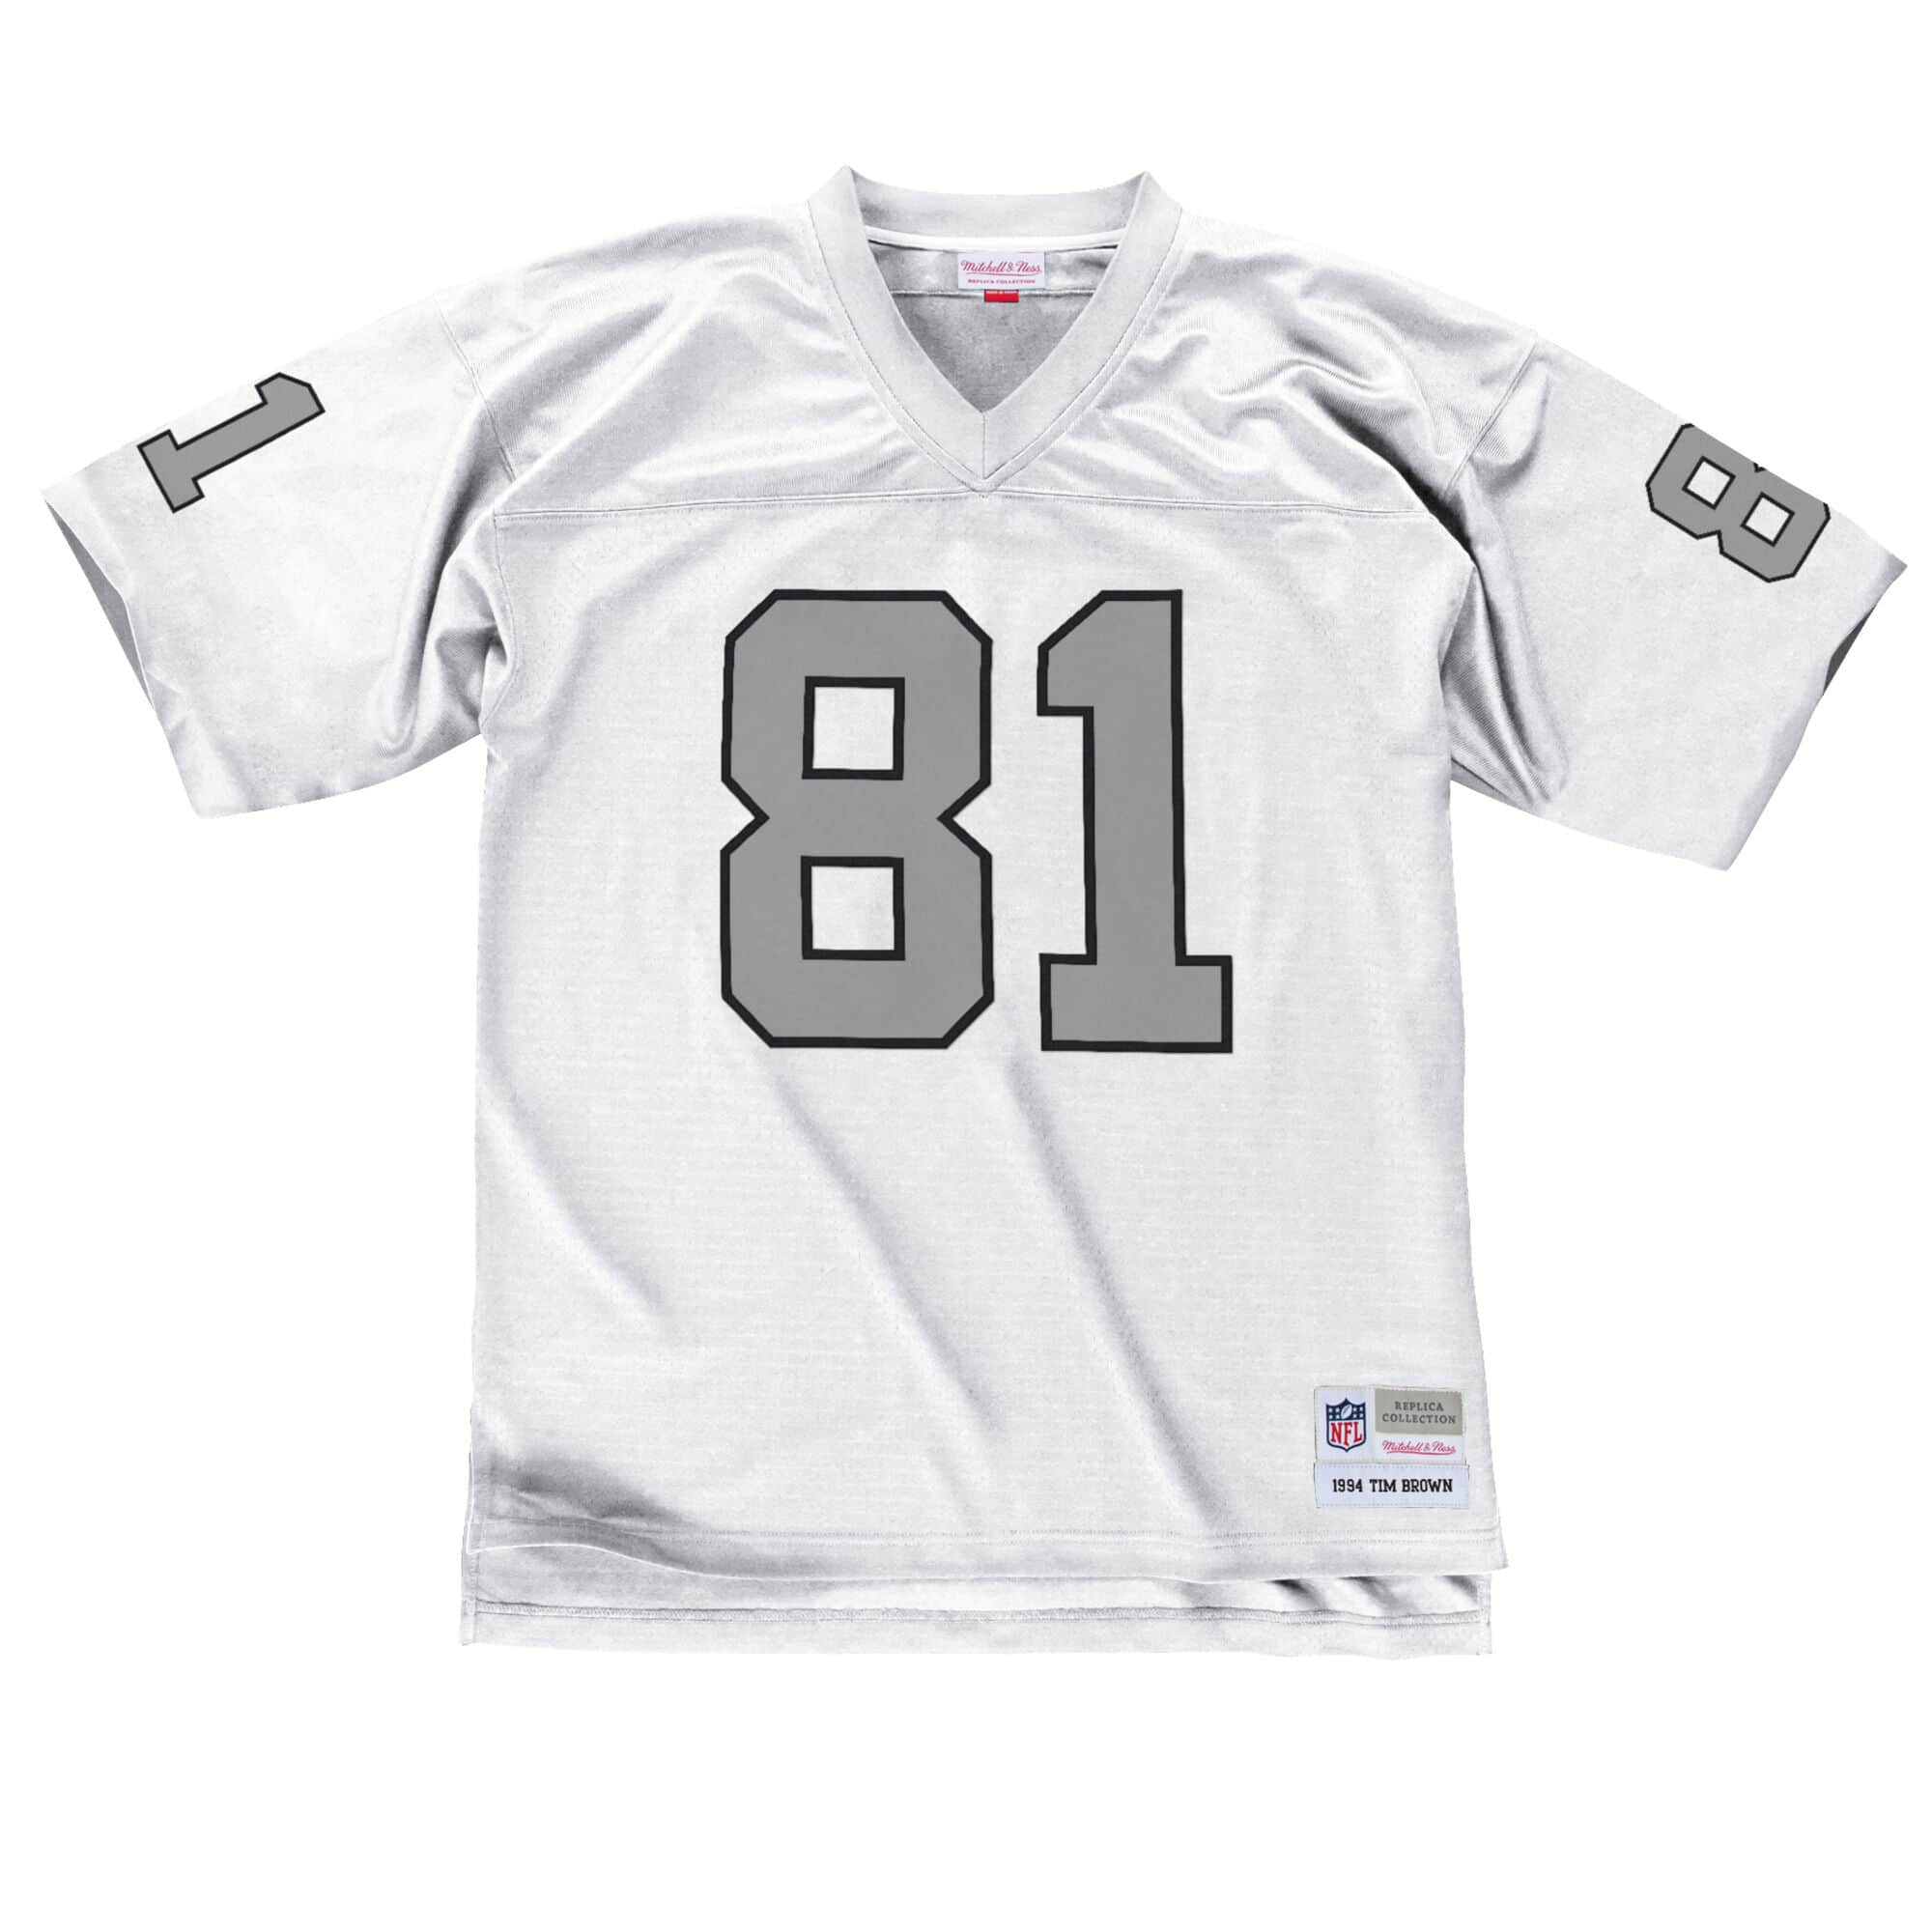 Tim Brown 1994 Legacy Jersey Los Angeles Raiders